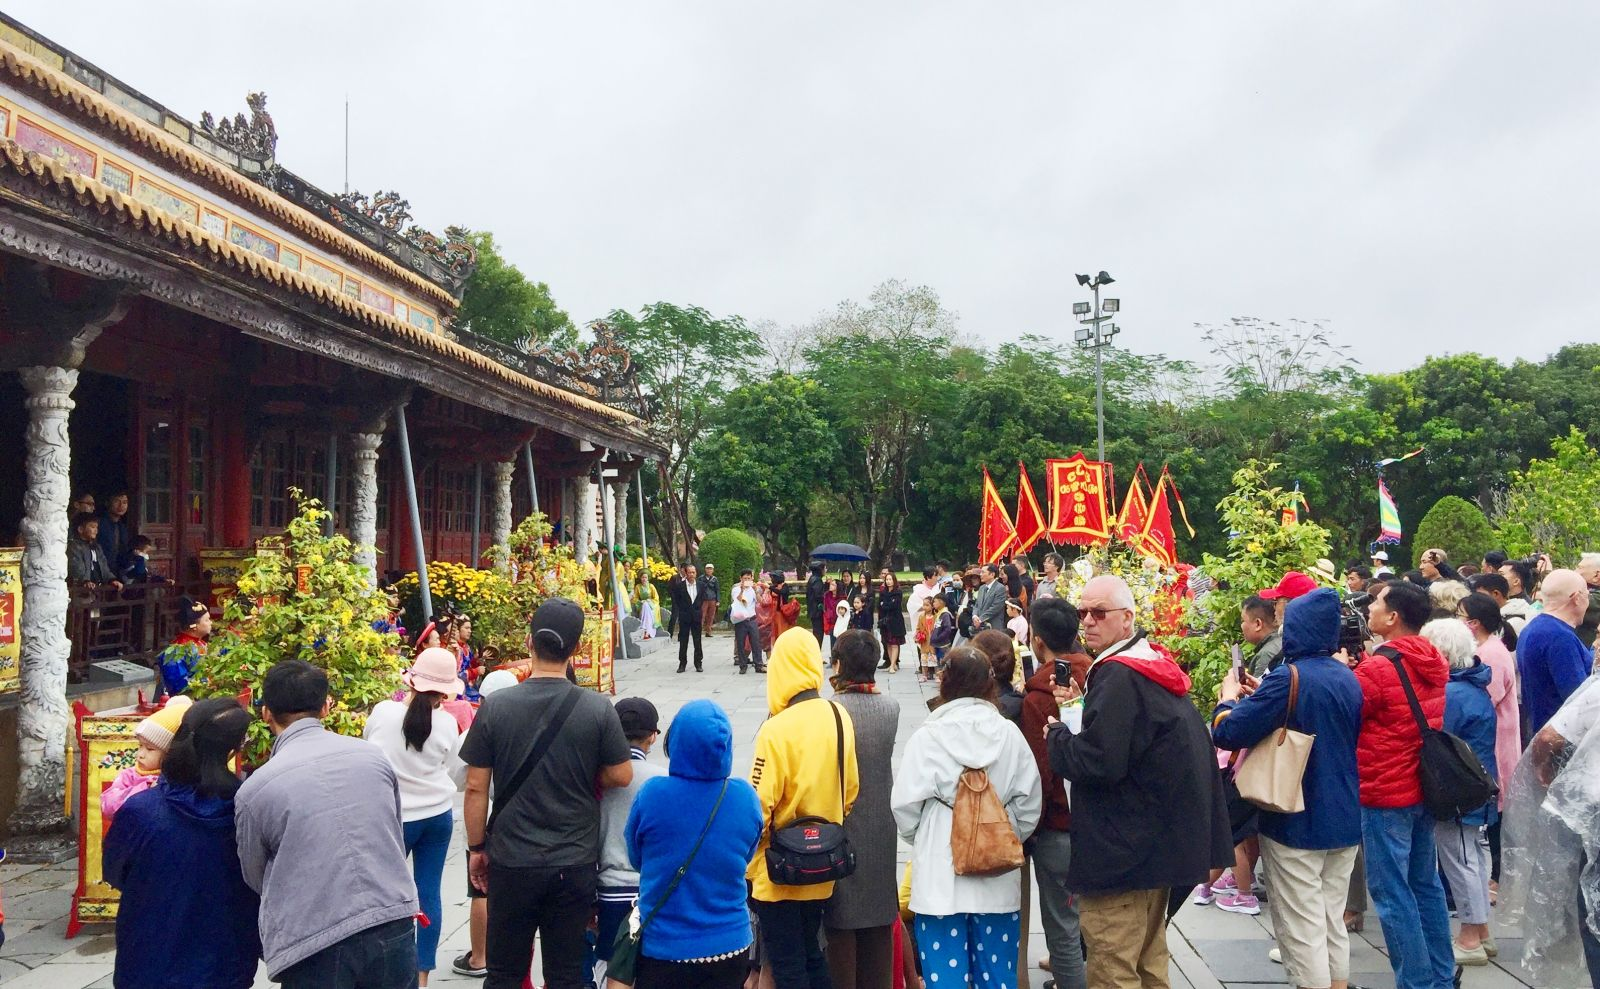 Visitors gathered in front of Thai Hoa palace even before the performances took place